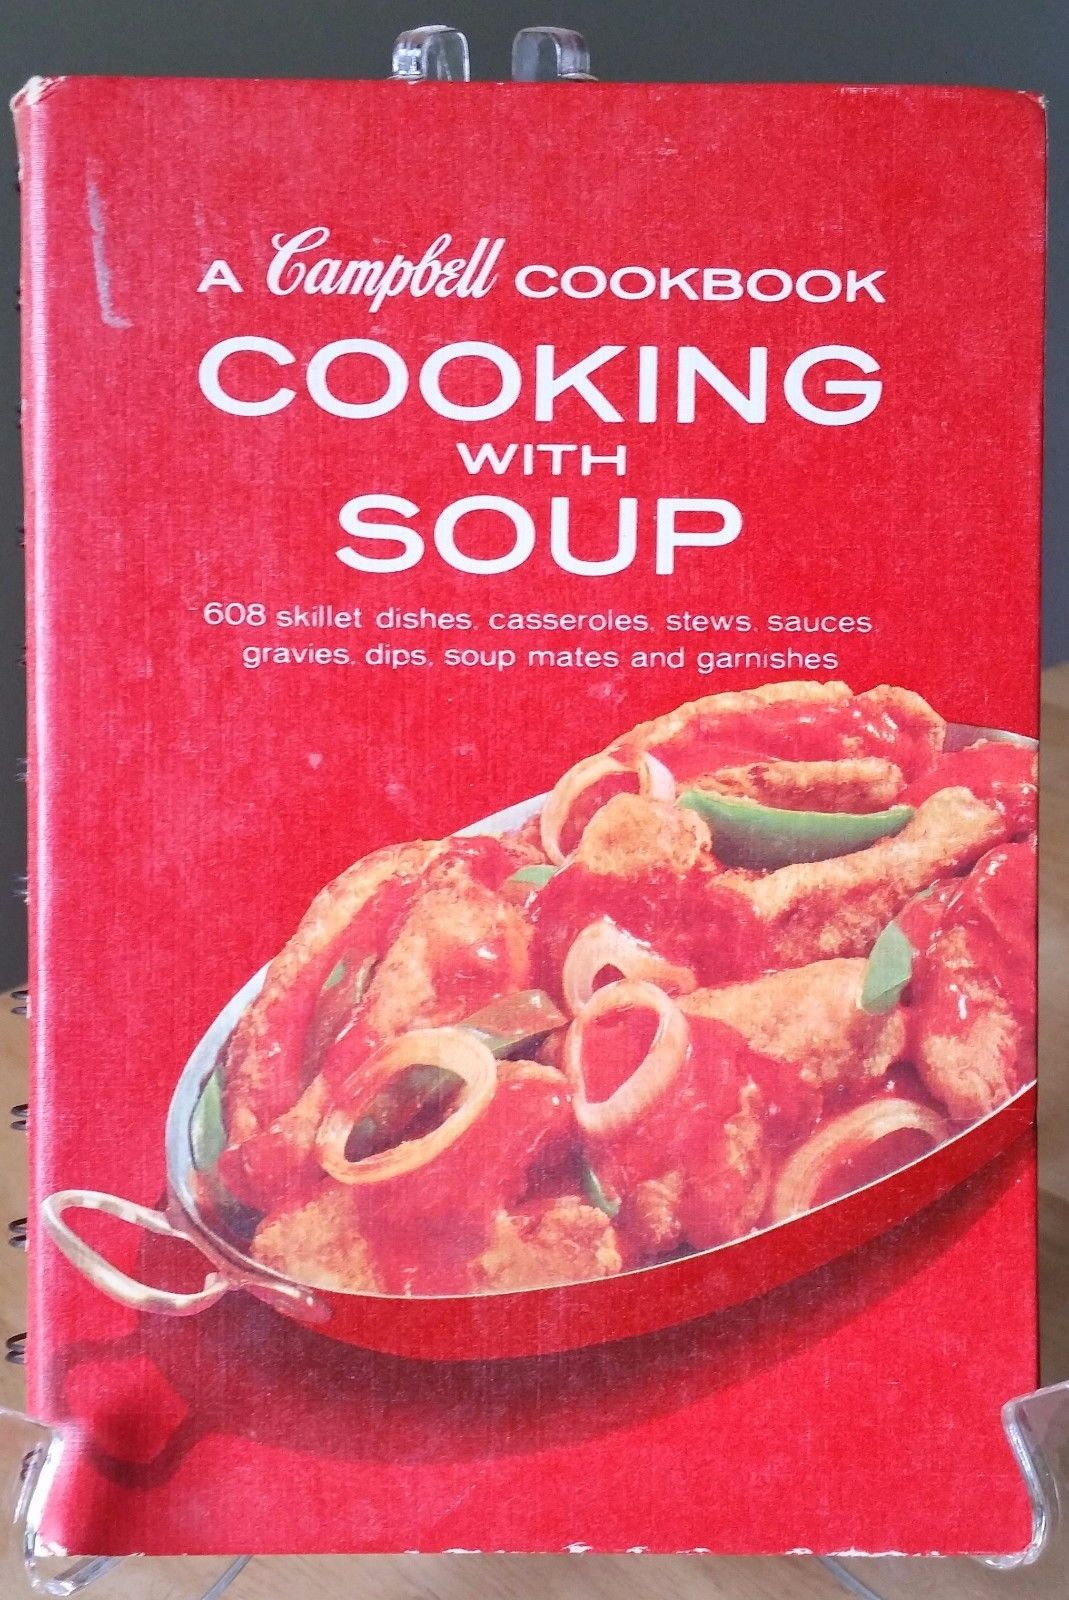 Primary image for A Campbell Cookbook Cooking With Soup 608 Dishes Recipes Spiral Bound Red 6491